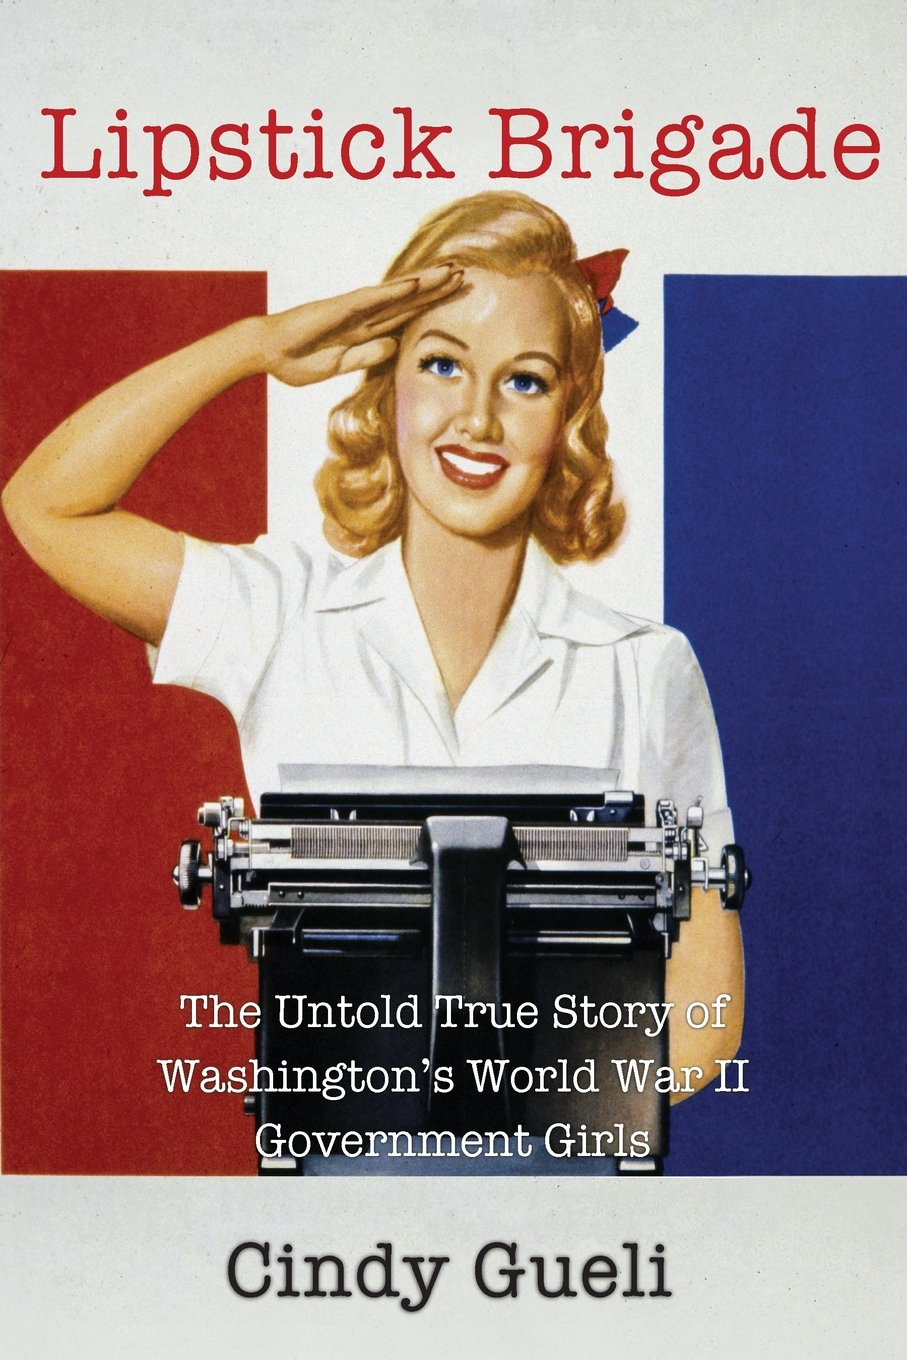 Lipstick Brigade: The Untold True Story of Washington's World War II Government Girls free download